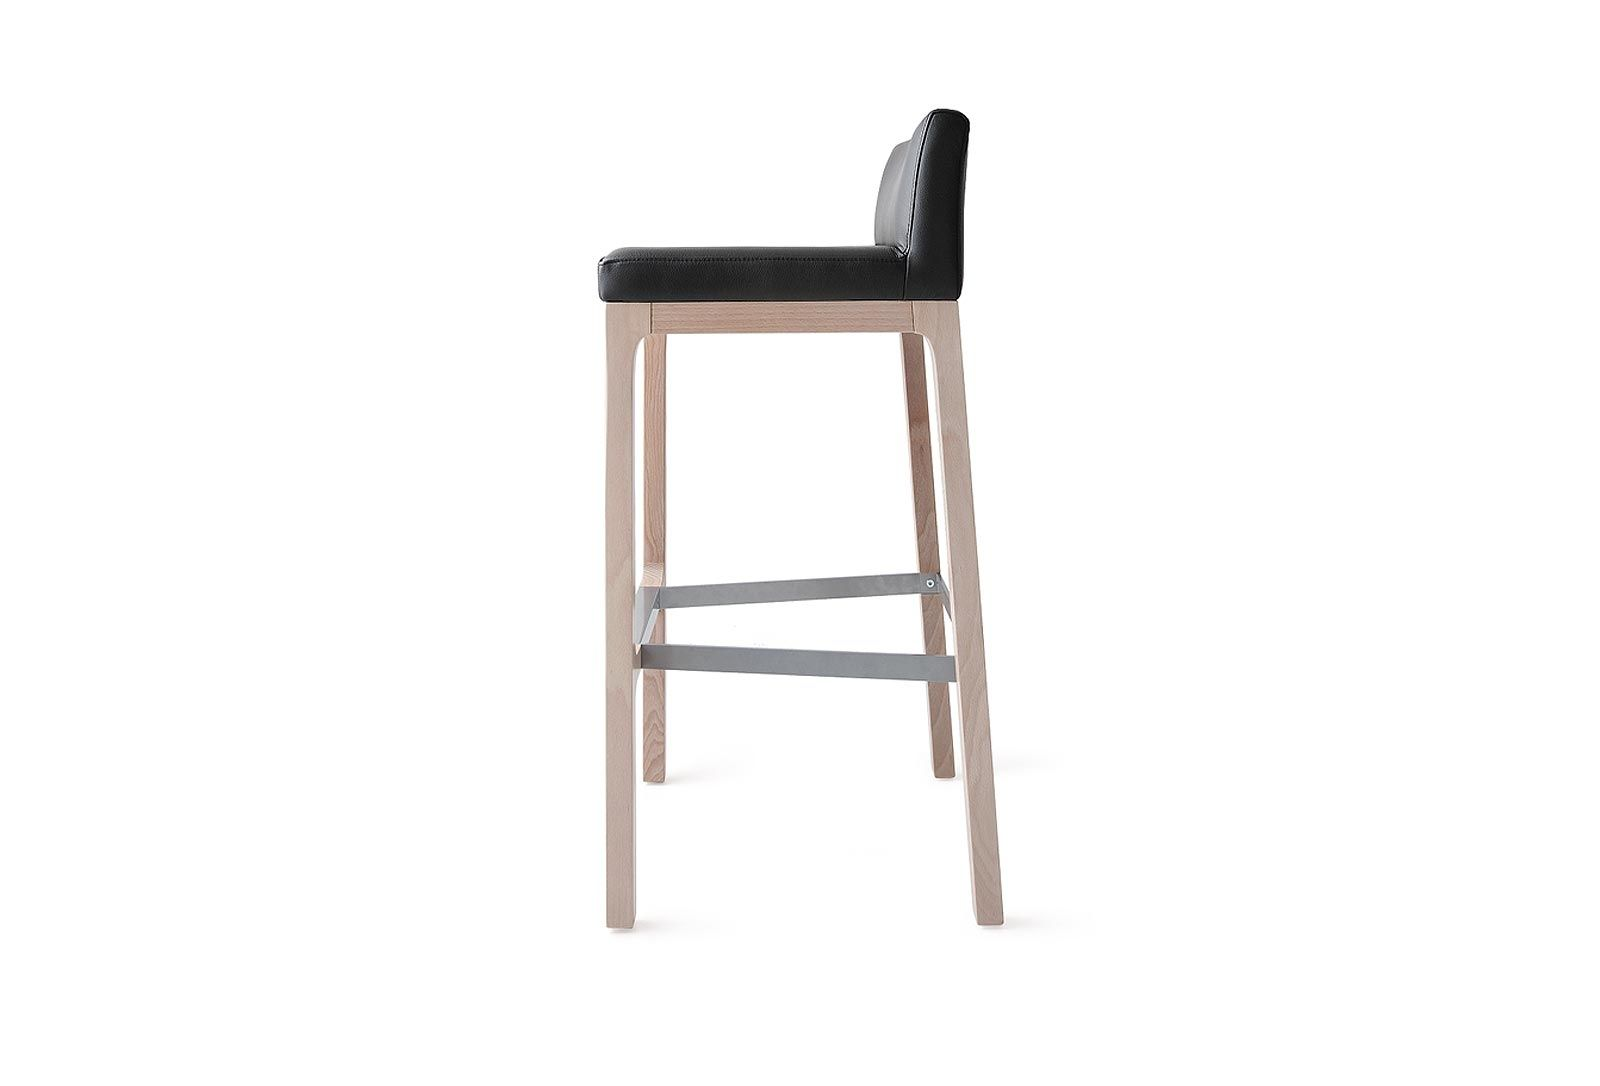 ... Contemporary bar stool / solid wood / leather / fabric FLUX by Emilio Nanni Bross Italia  sc 1 st  ArchiExpo & Contemporary bar stool / solid wood / leather / fabric - FLUX by ... islam-shia.org